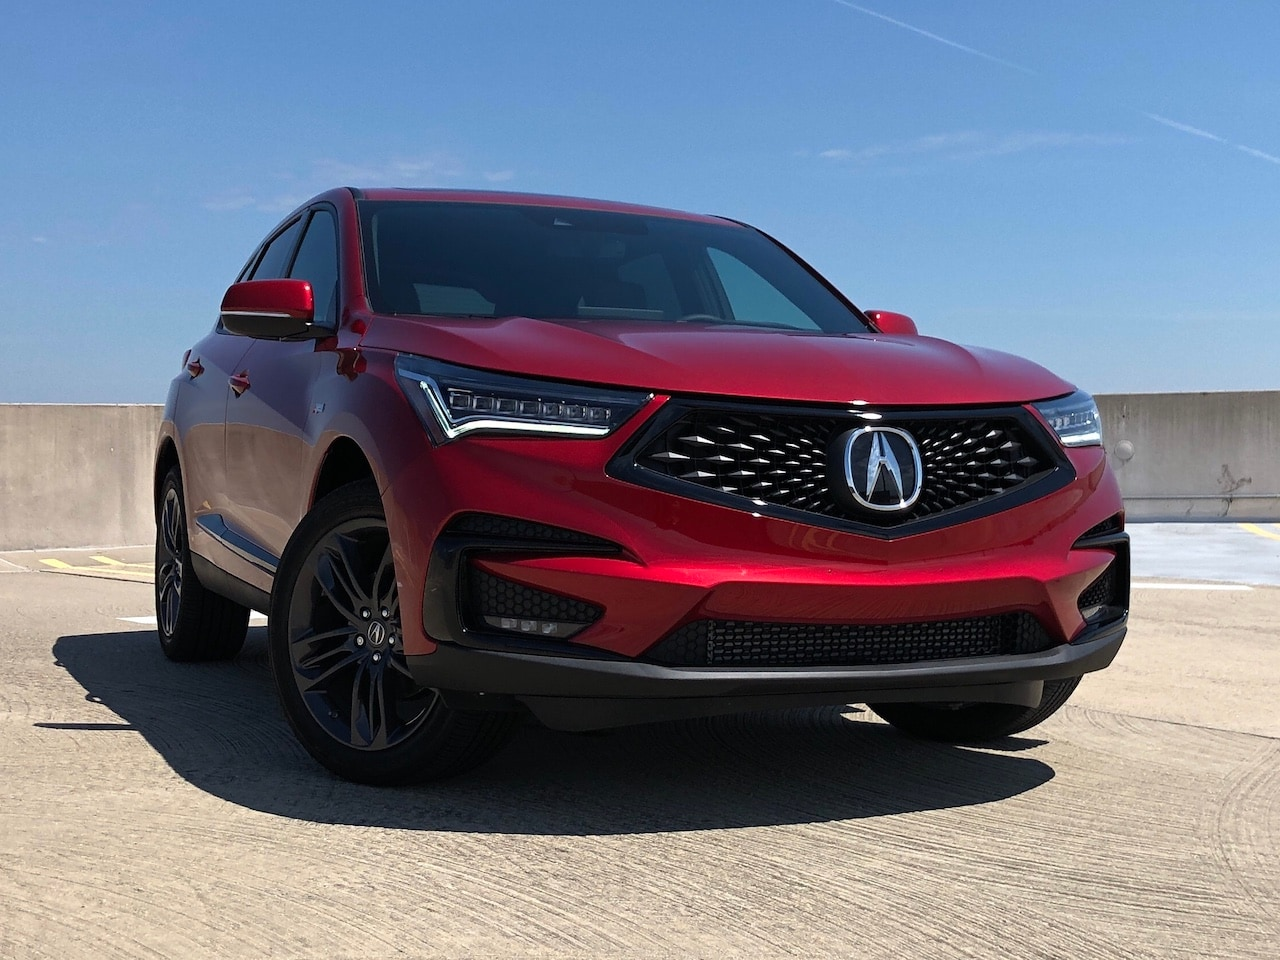 Image of the 2020 Acura TLX PMC Edition